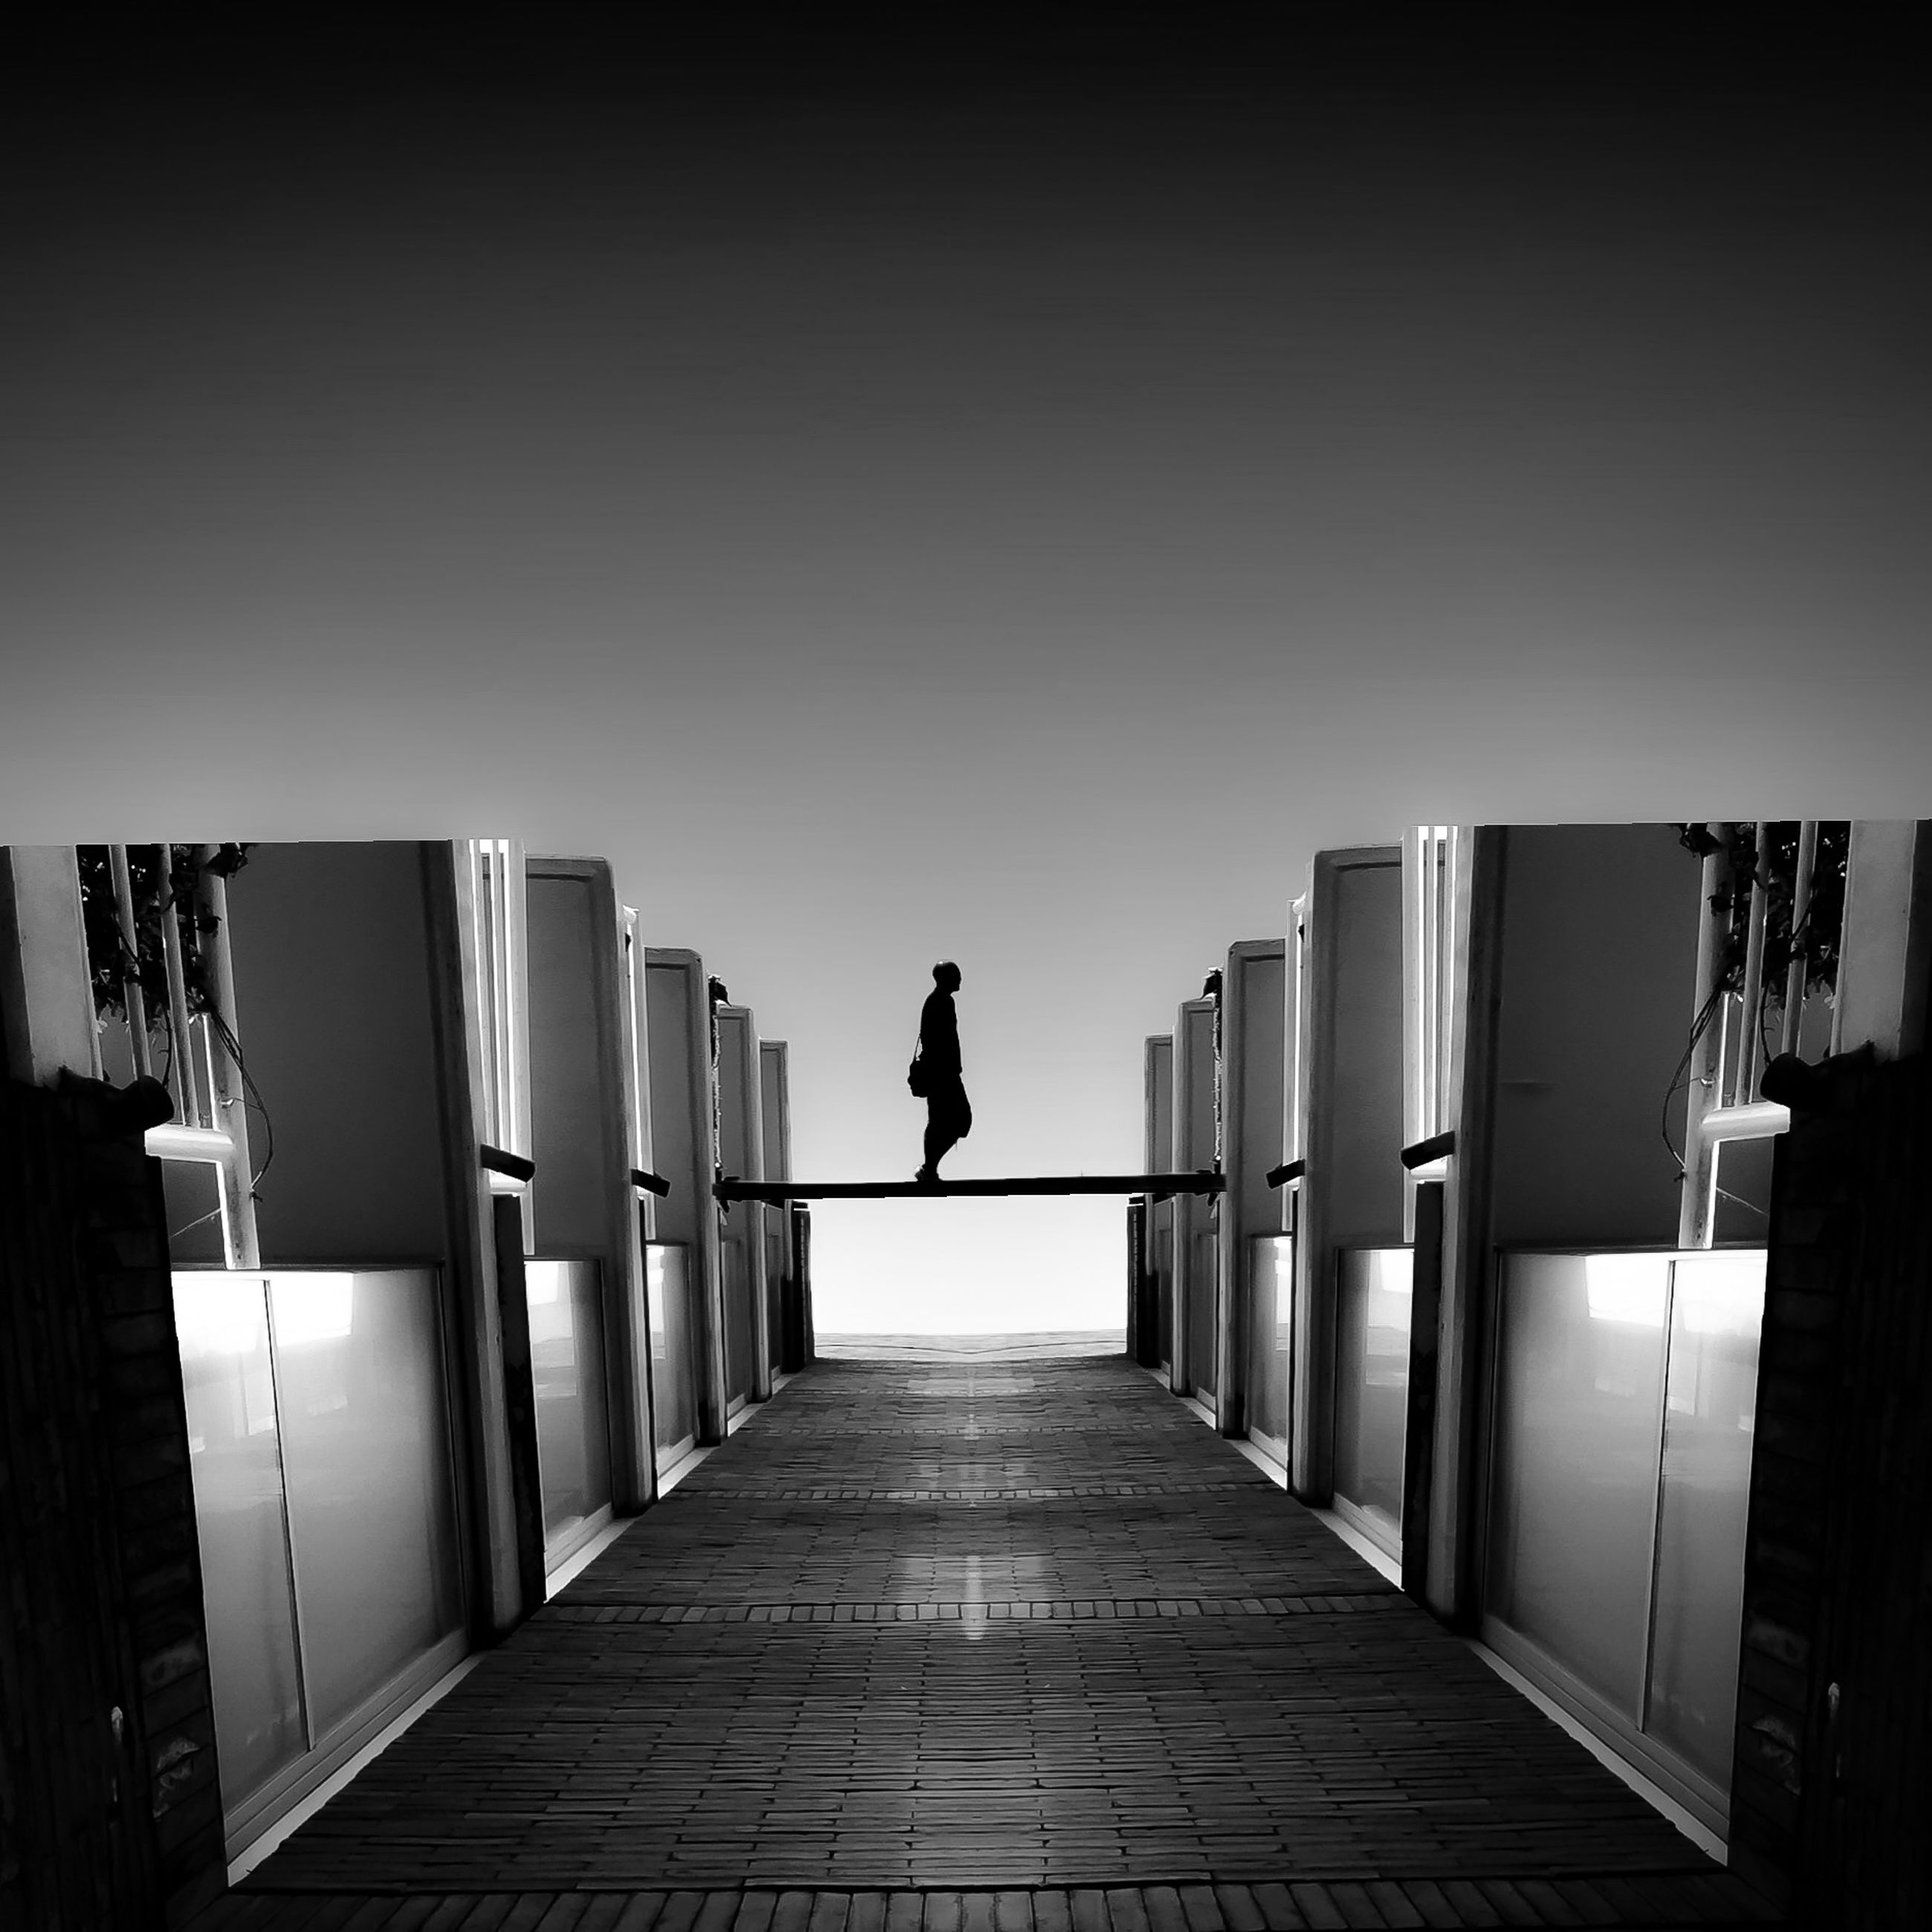 full length, built structure, architecture, walking, clear sky, building exterior, rear view, the way forward, lifestyles, men, copy space, leisure activity, diminishing perspective, railing, city, person, silhouette, city life